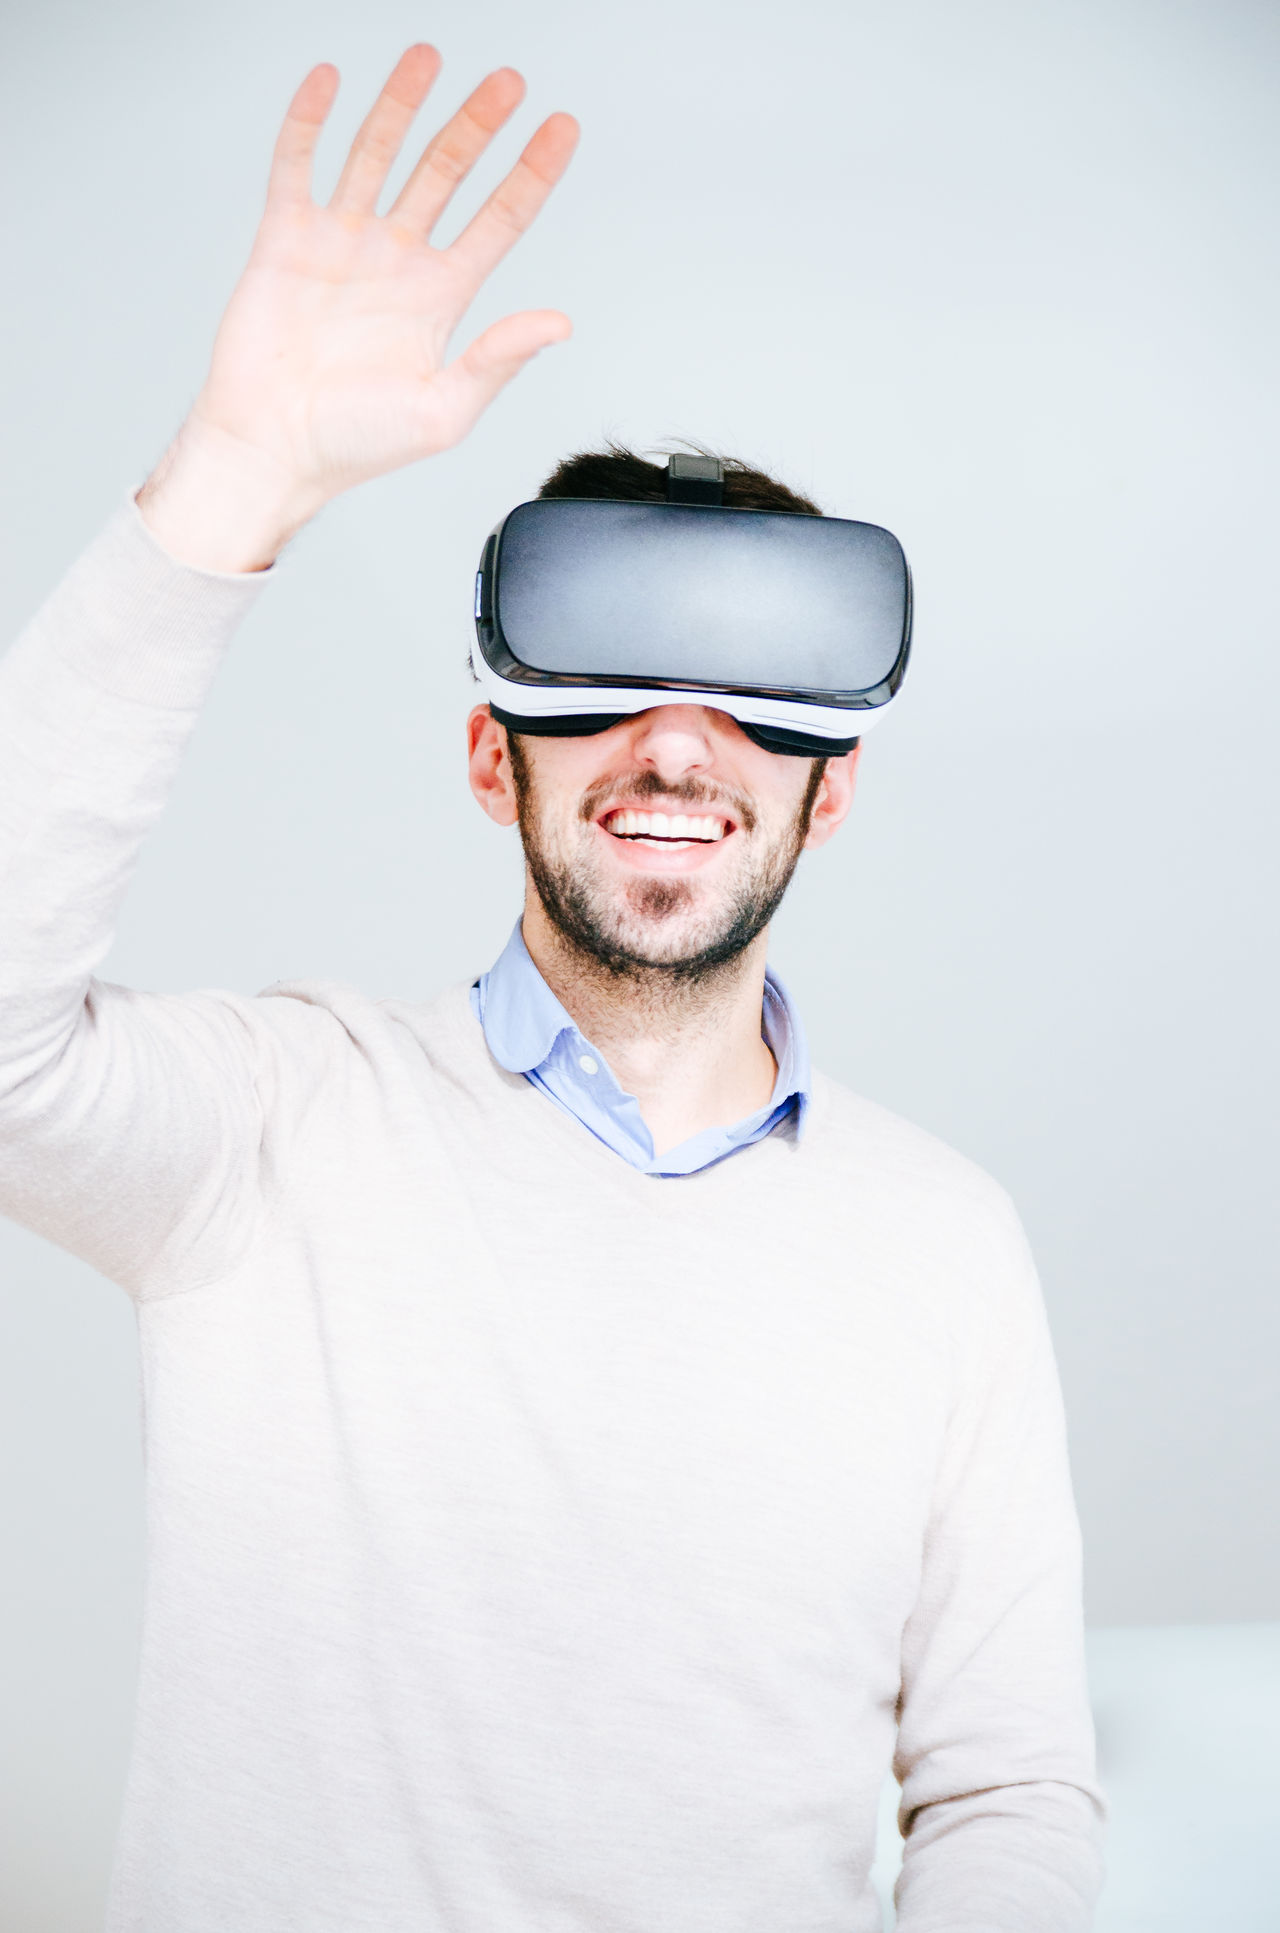 3-d Glasses Adult Adults Only Copy Space Cyberspace Enjoyment Futuristic Hand Raised Human Body Part Innovation Looking Men One Man Only One Person Only Men People Smiling Technology Virtual Reality Virtual Reality Simulator Vr Wearable Computer Wireless Technology